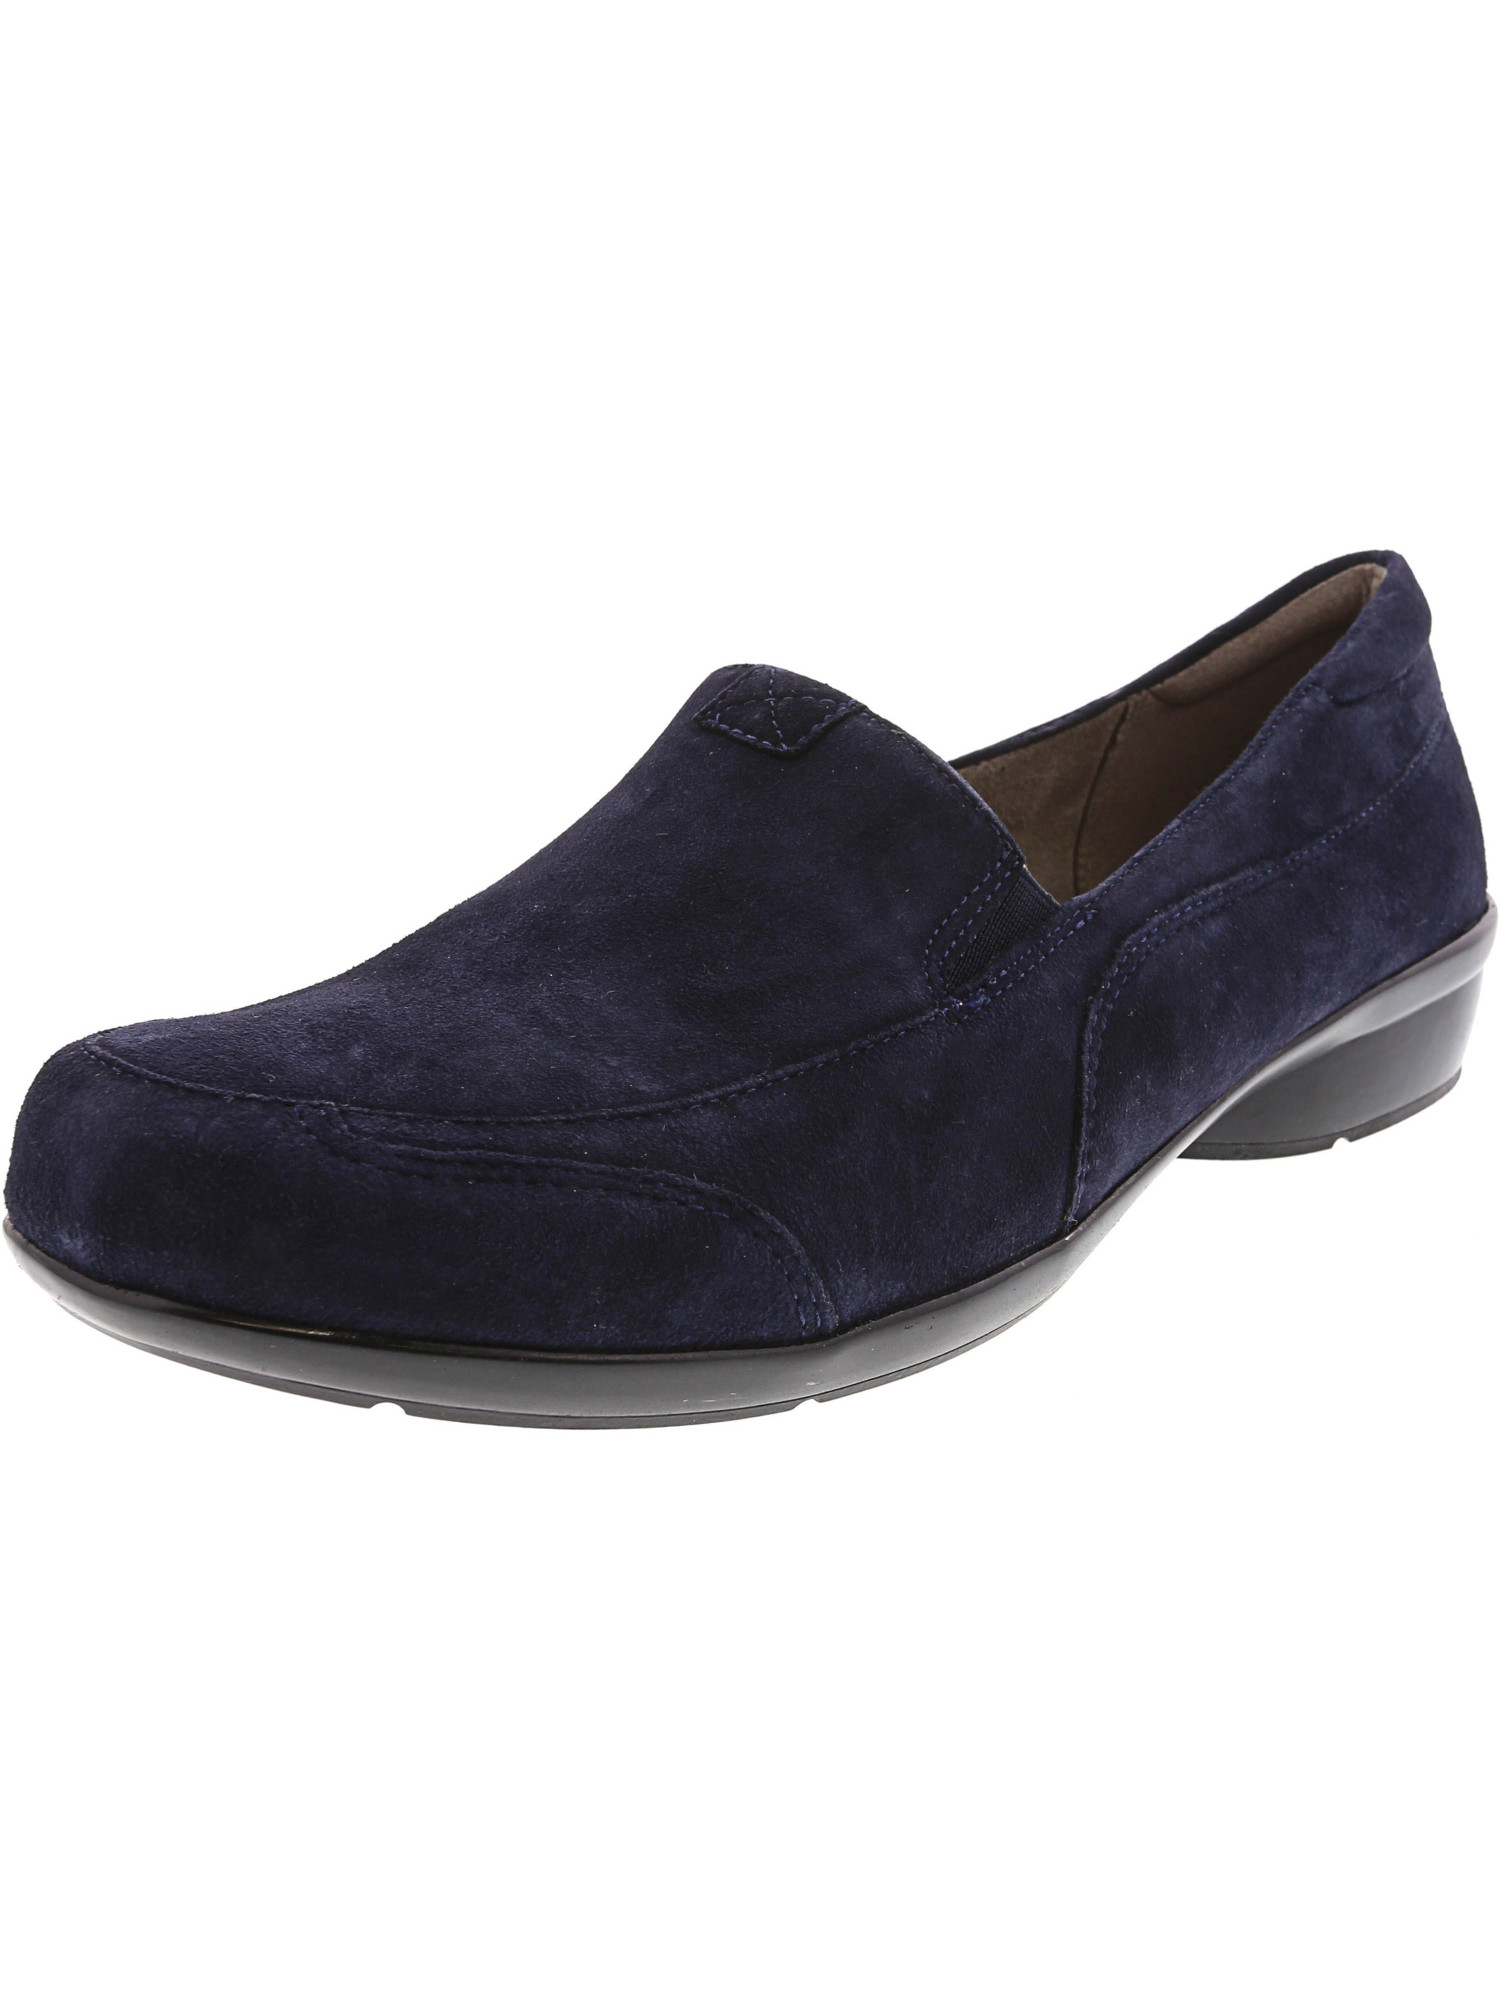 Naturalizer Women's Channing Suede Navy